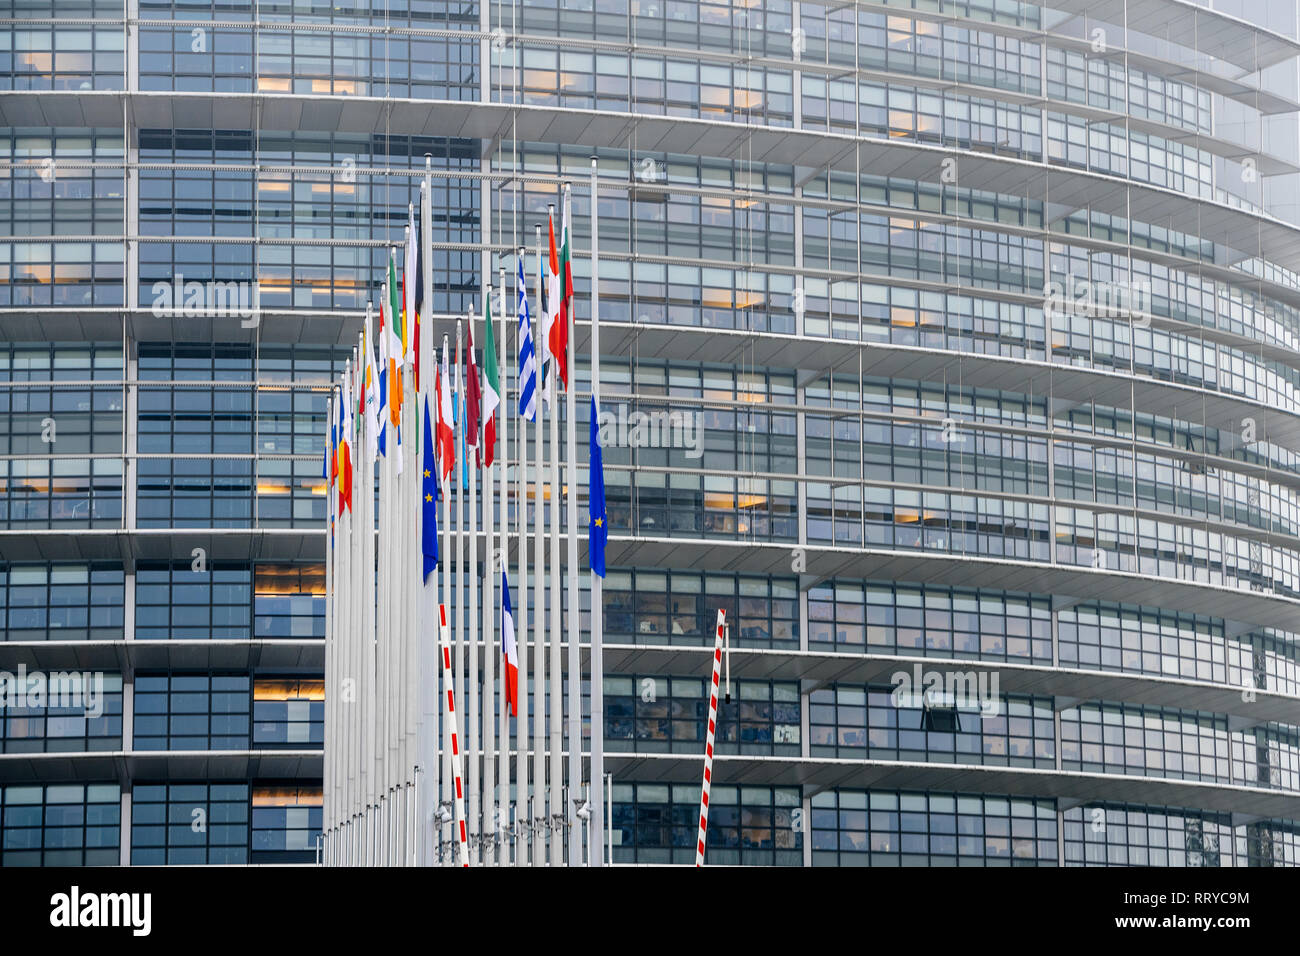 STRASBOURG, FRANCE - DEC 11, 2018: Mist over European Union and French Flags flies at half-mast in front of the European Parliament following an attack in center of Strasbourg during annual Christmas Market - Stock Image